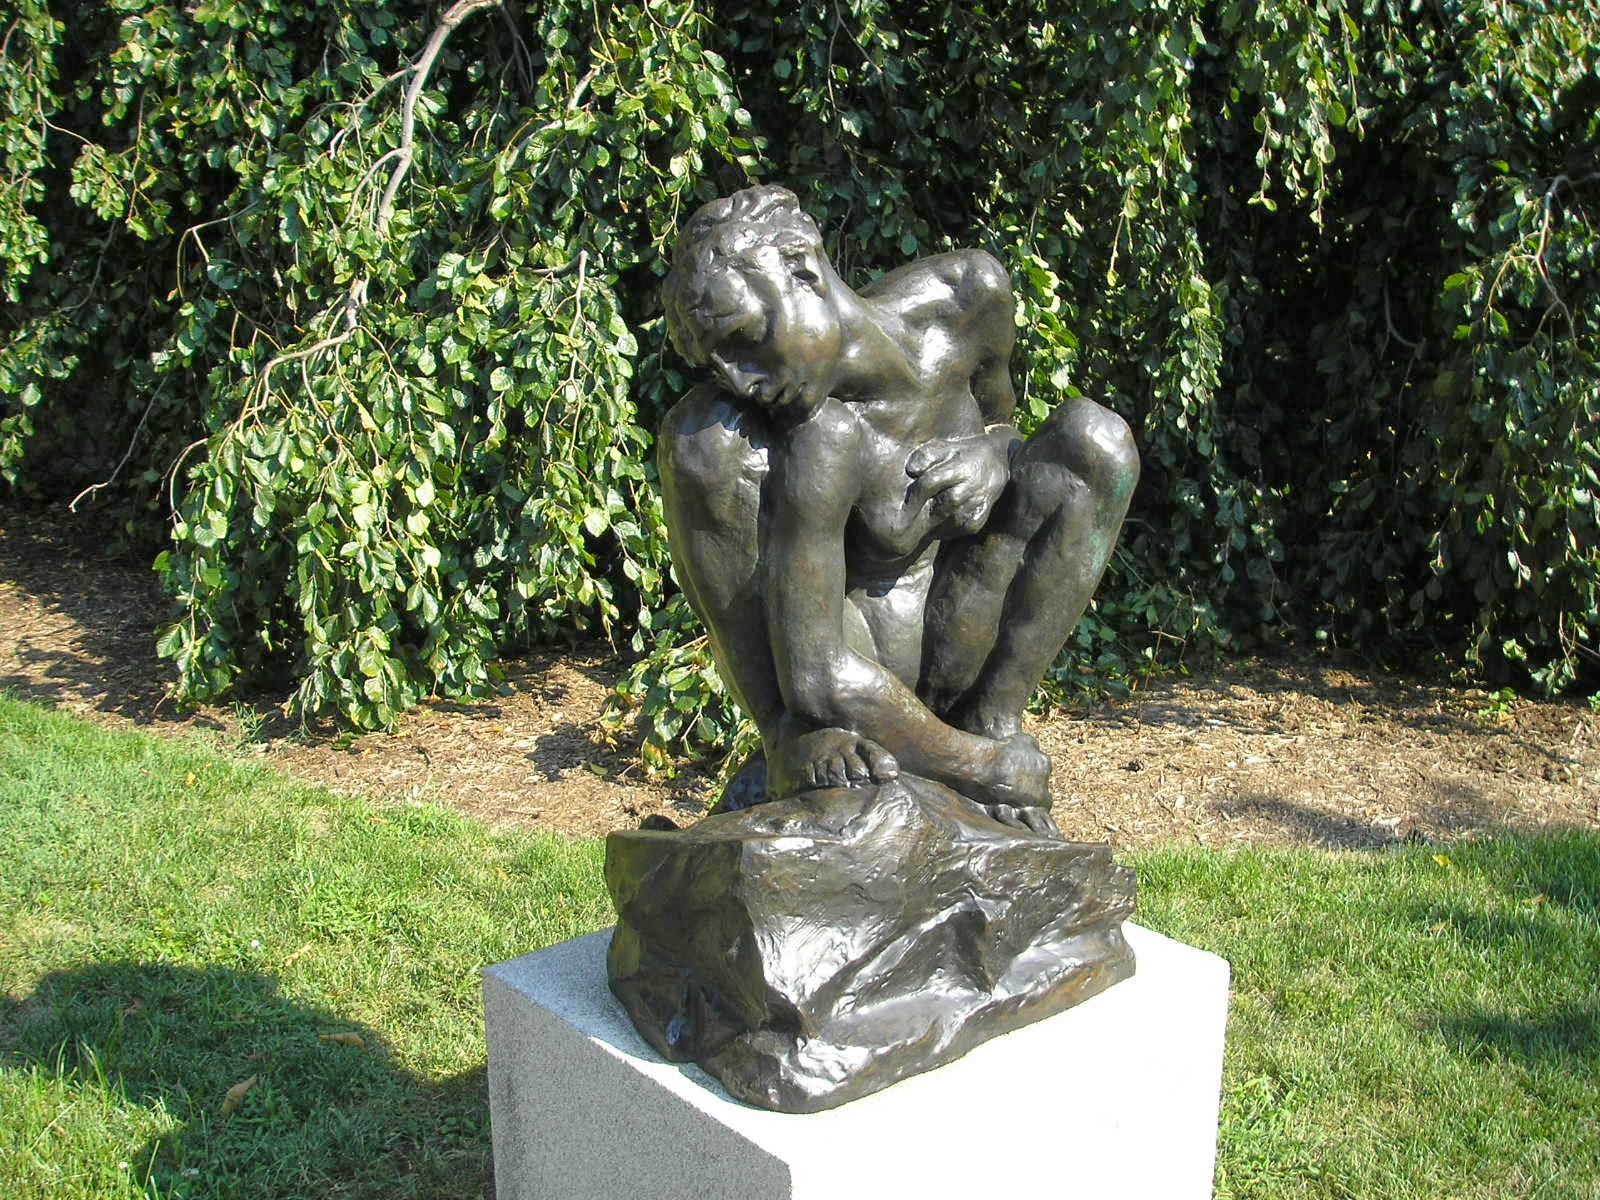 http://upload.wikimedia.org/wikipedia/commons/c/cf/Auguste_Rodin_001.jpg